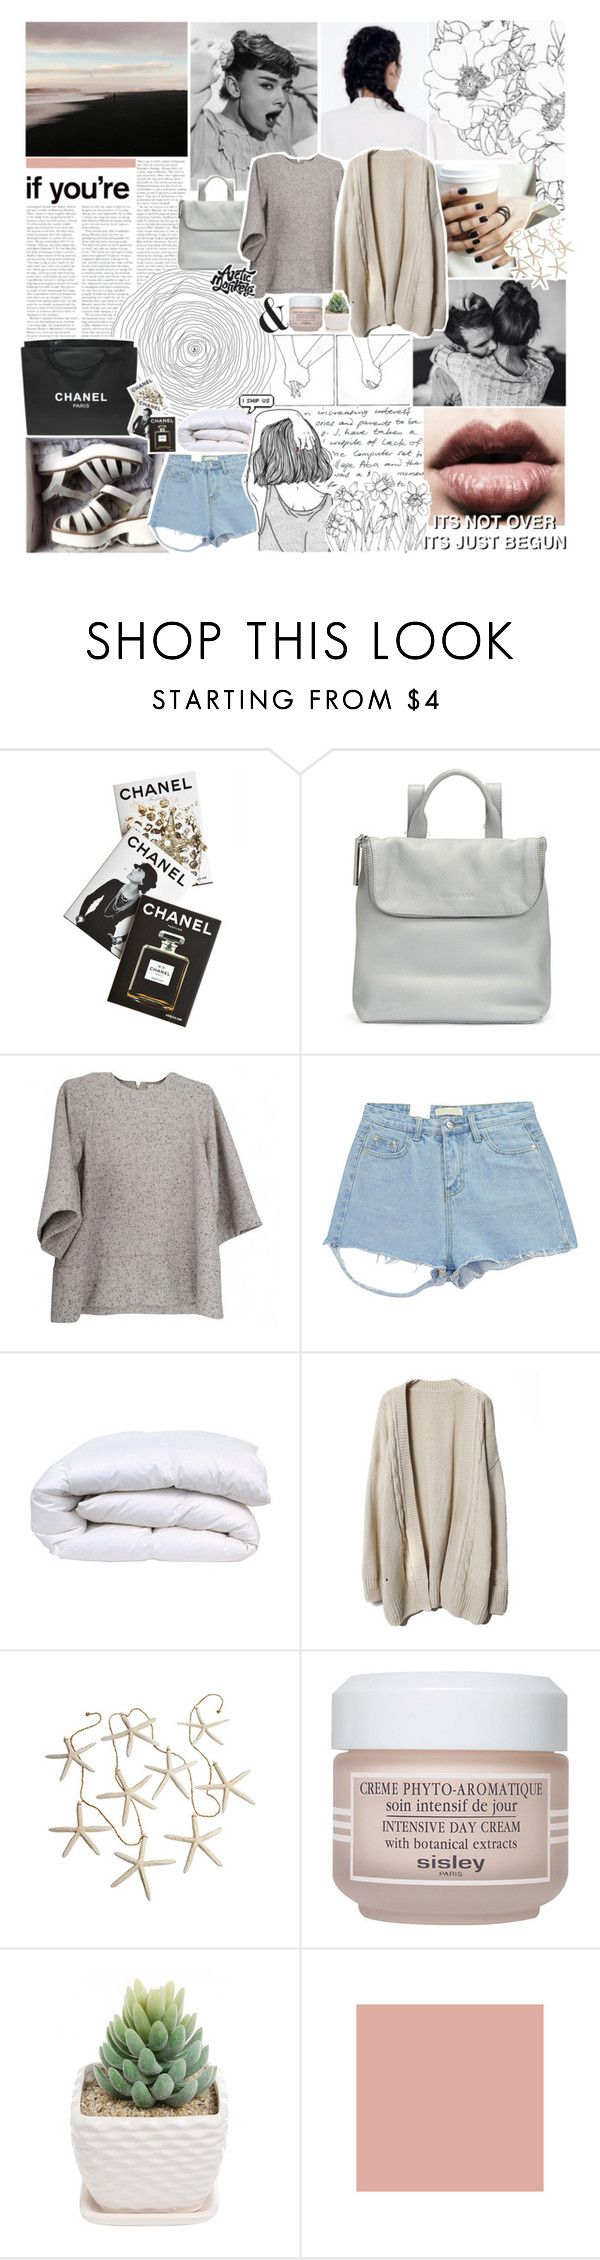 """two paper airplanes flying ♡"" by she-wants-somebody-to-love ❤ liked on Polyvore featuring Bulgari, Chanel, Assouline Publishing, Whistles, Chicnova Fashion and Sisley"